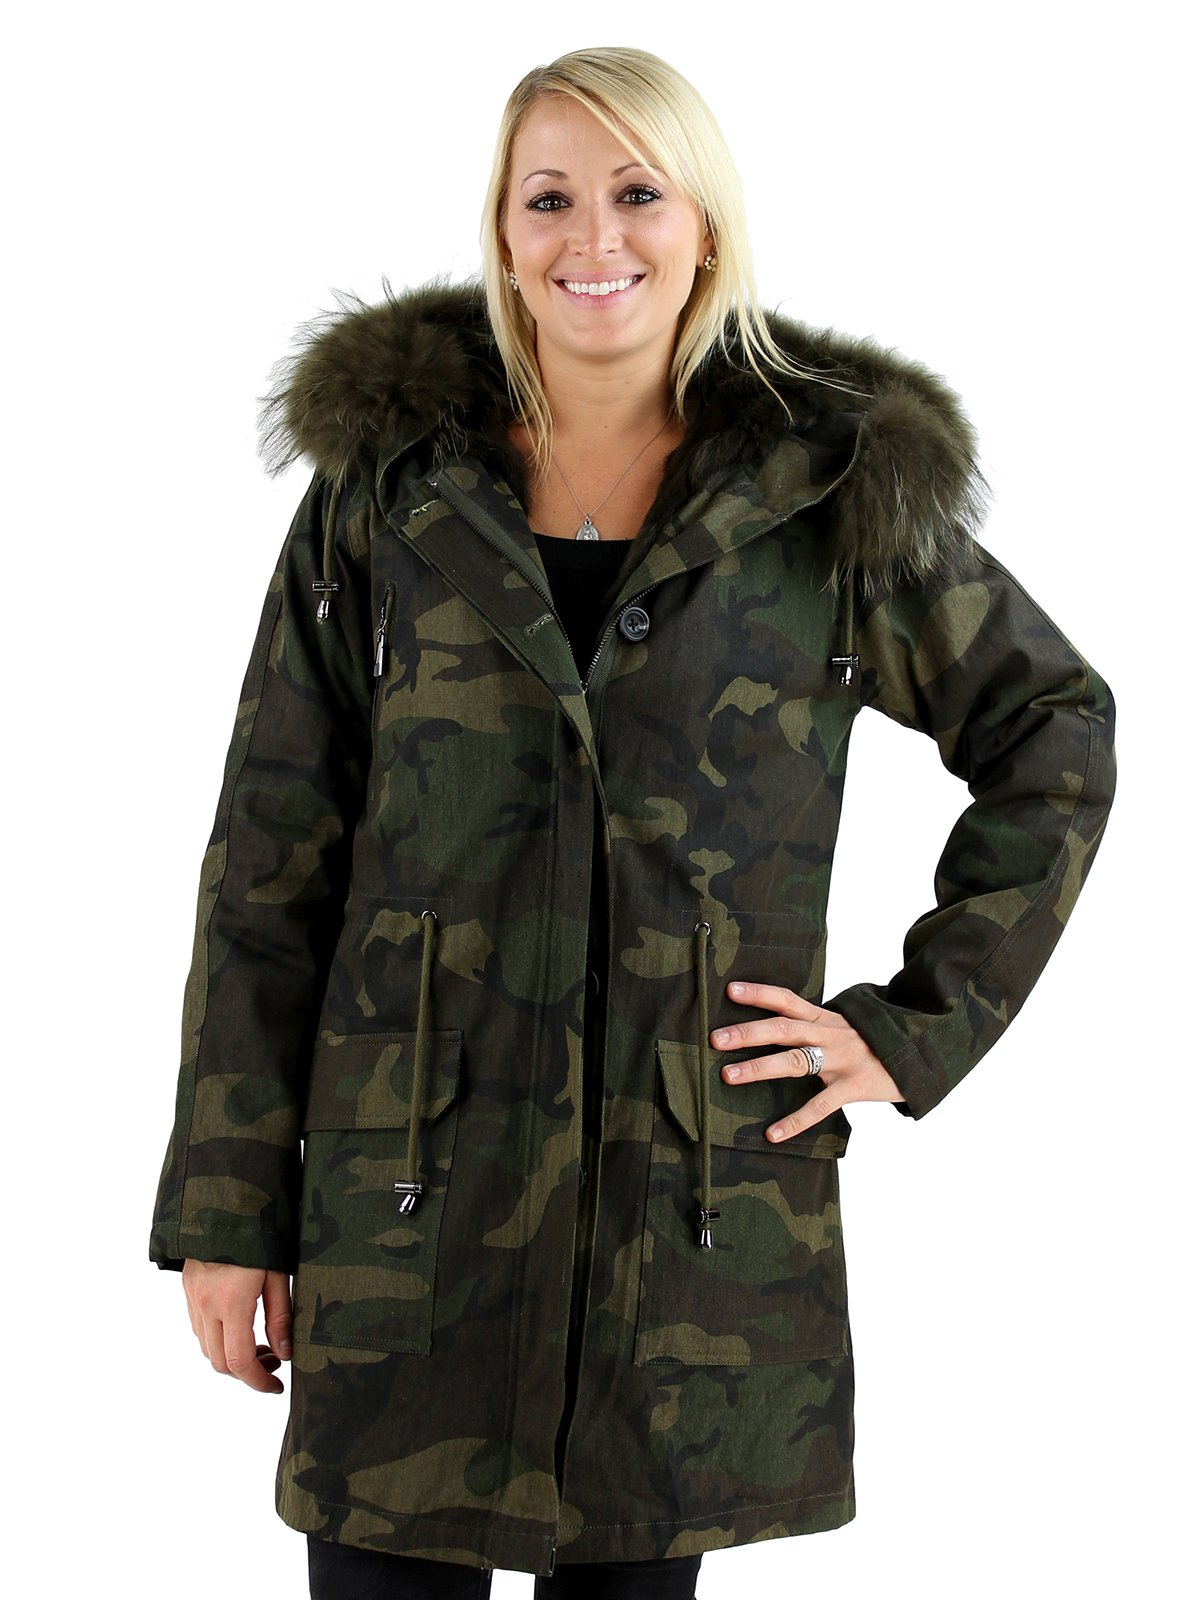 Woman's Green Camo Fabric Parka